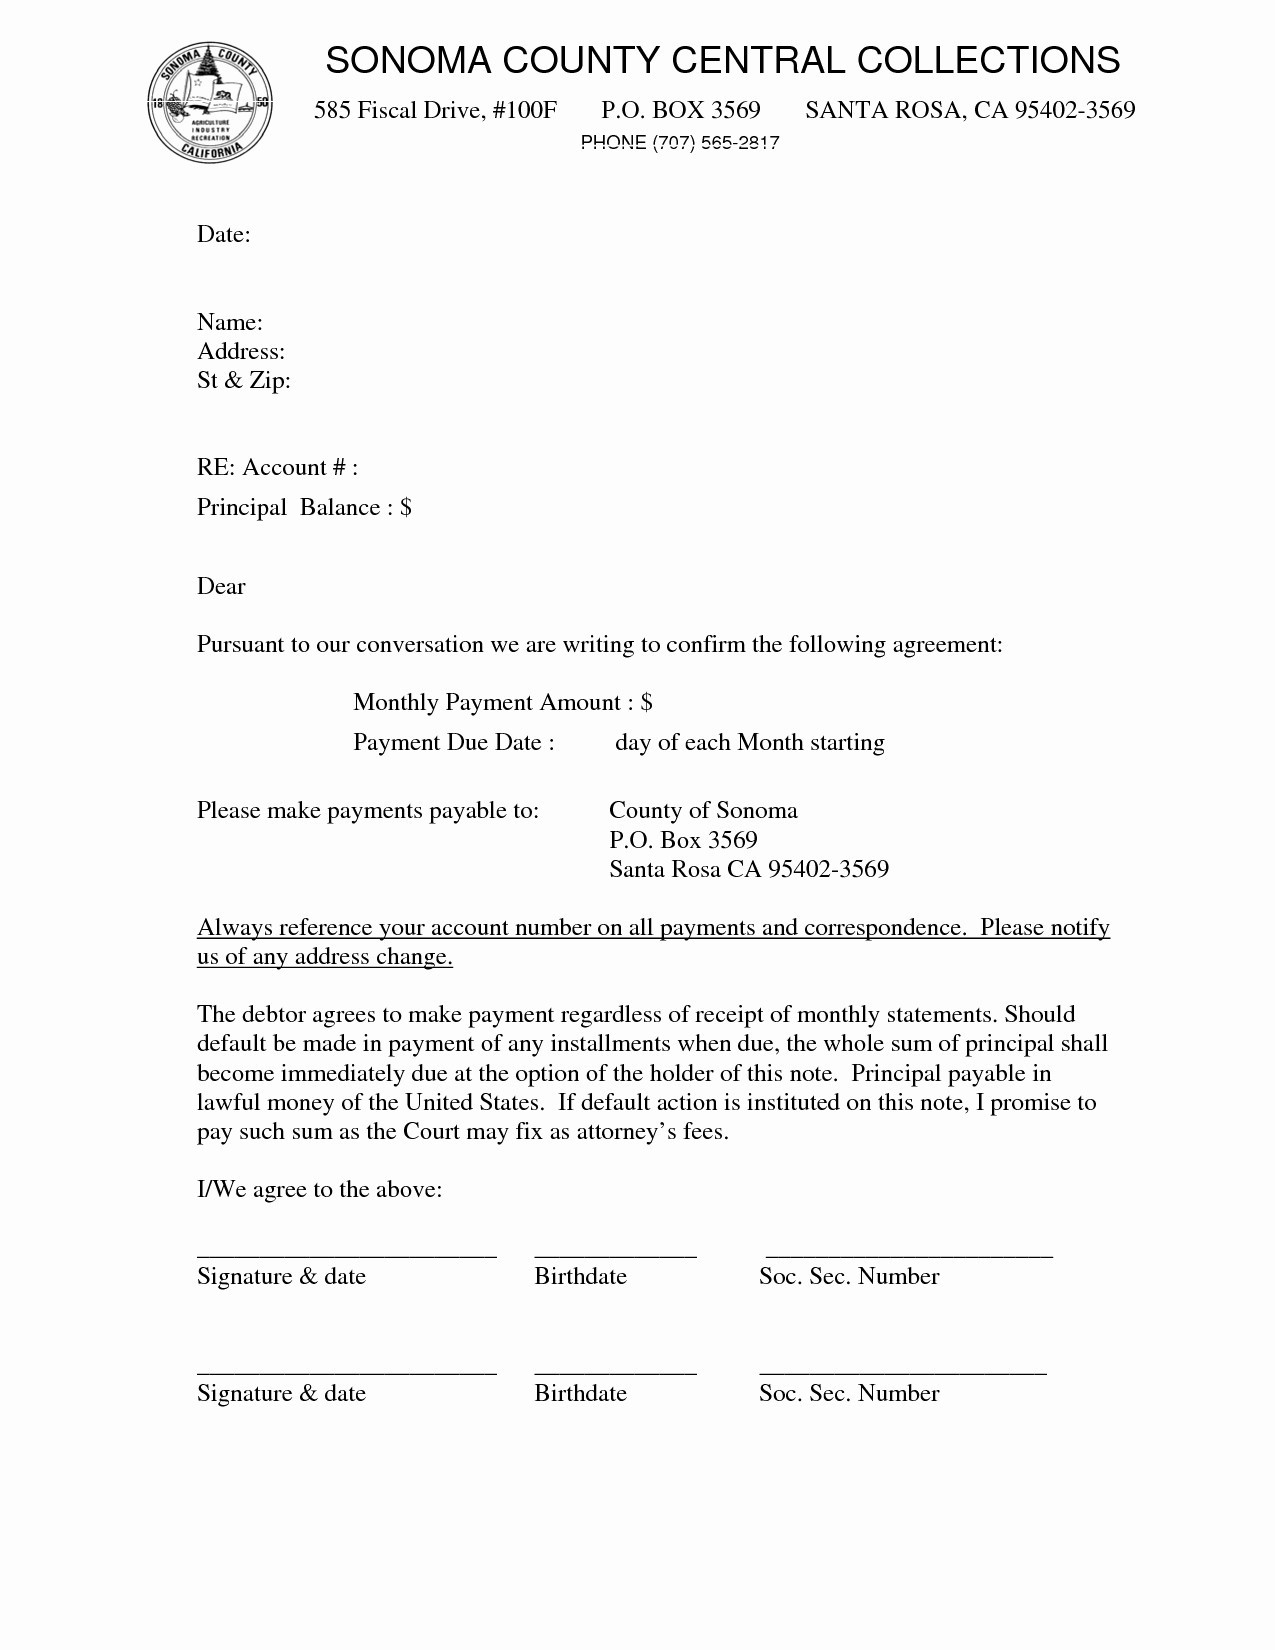 Payment Arrangement Letter Template - Payment Agreement Letter format Inspirationa Letter format for